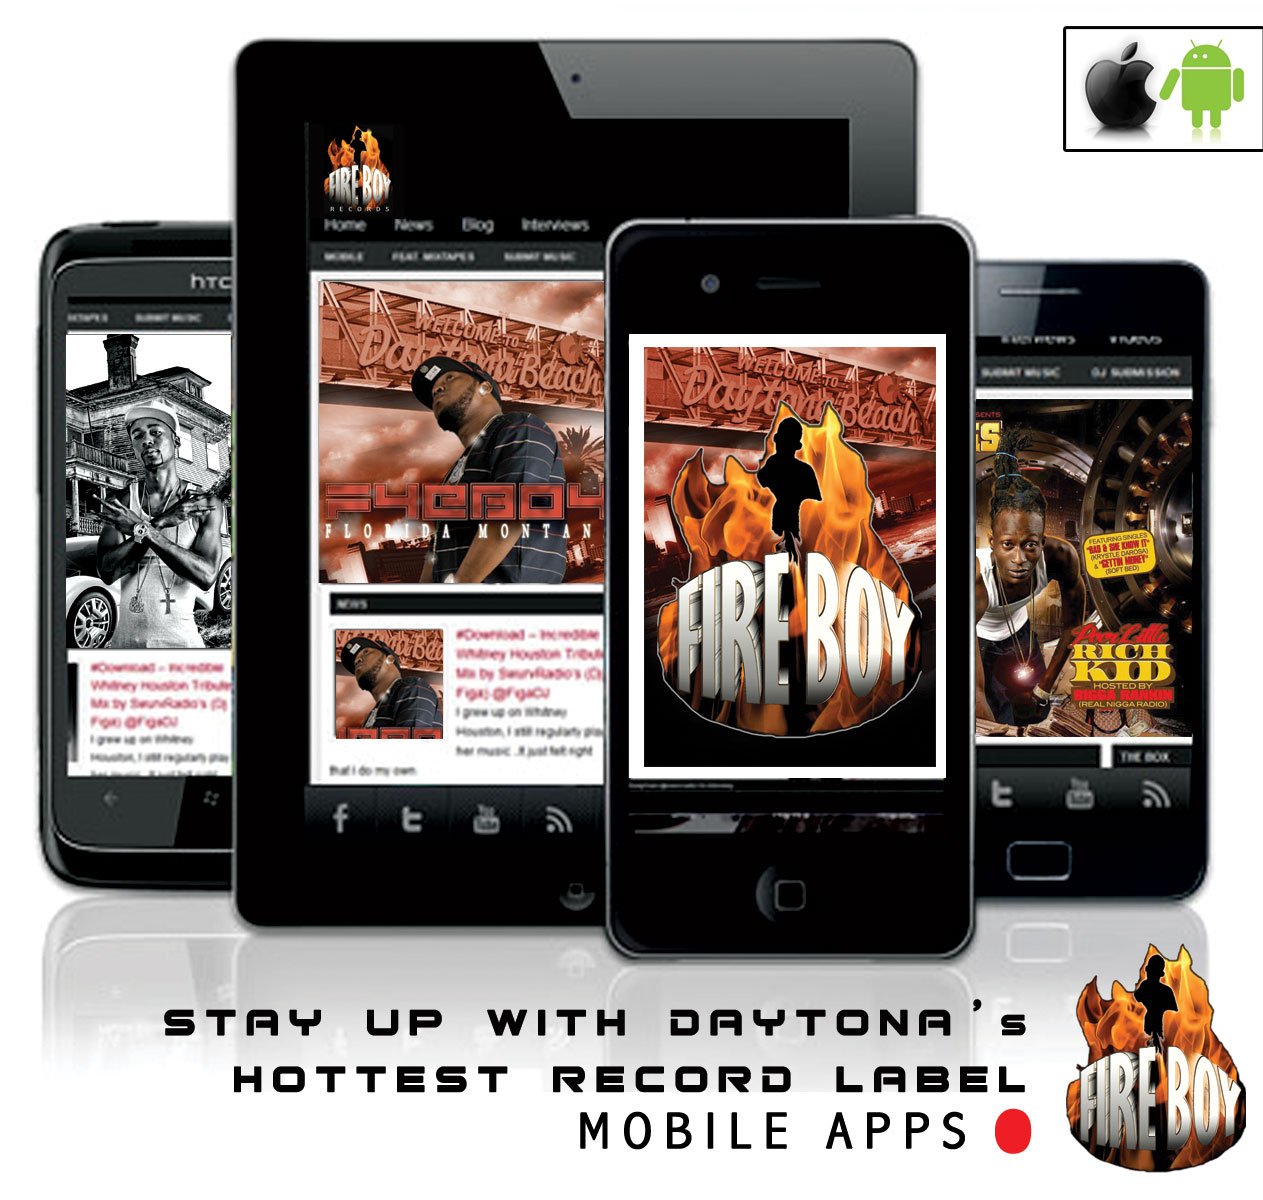 The FireBoy Mobile App is HERE!! Download Yours FREE Today